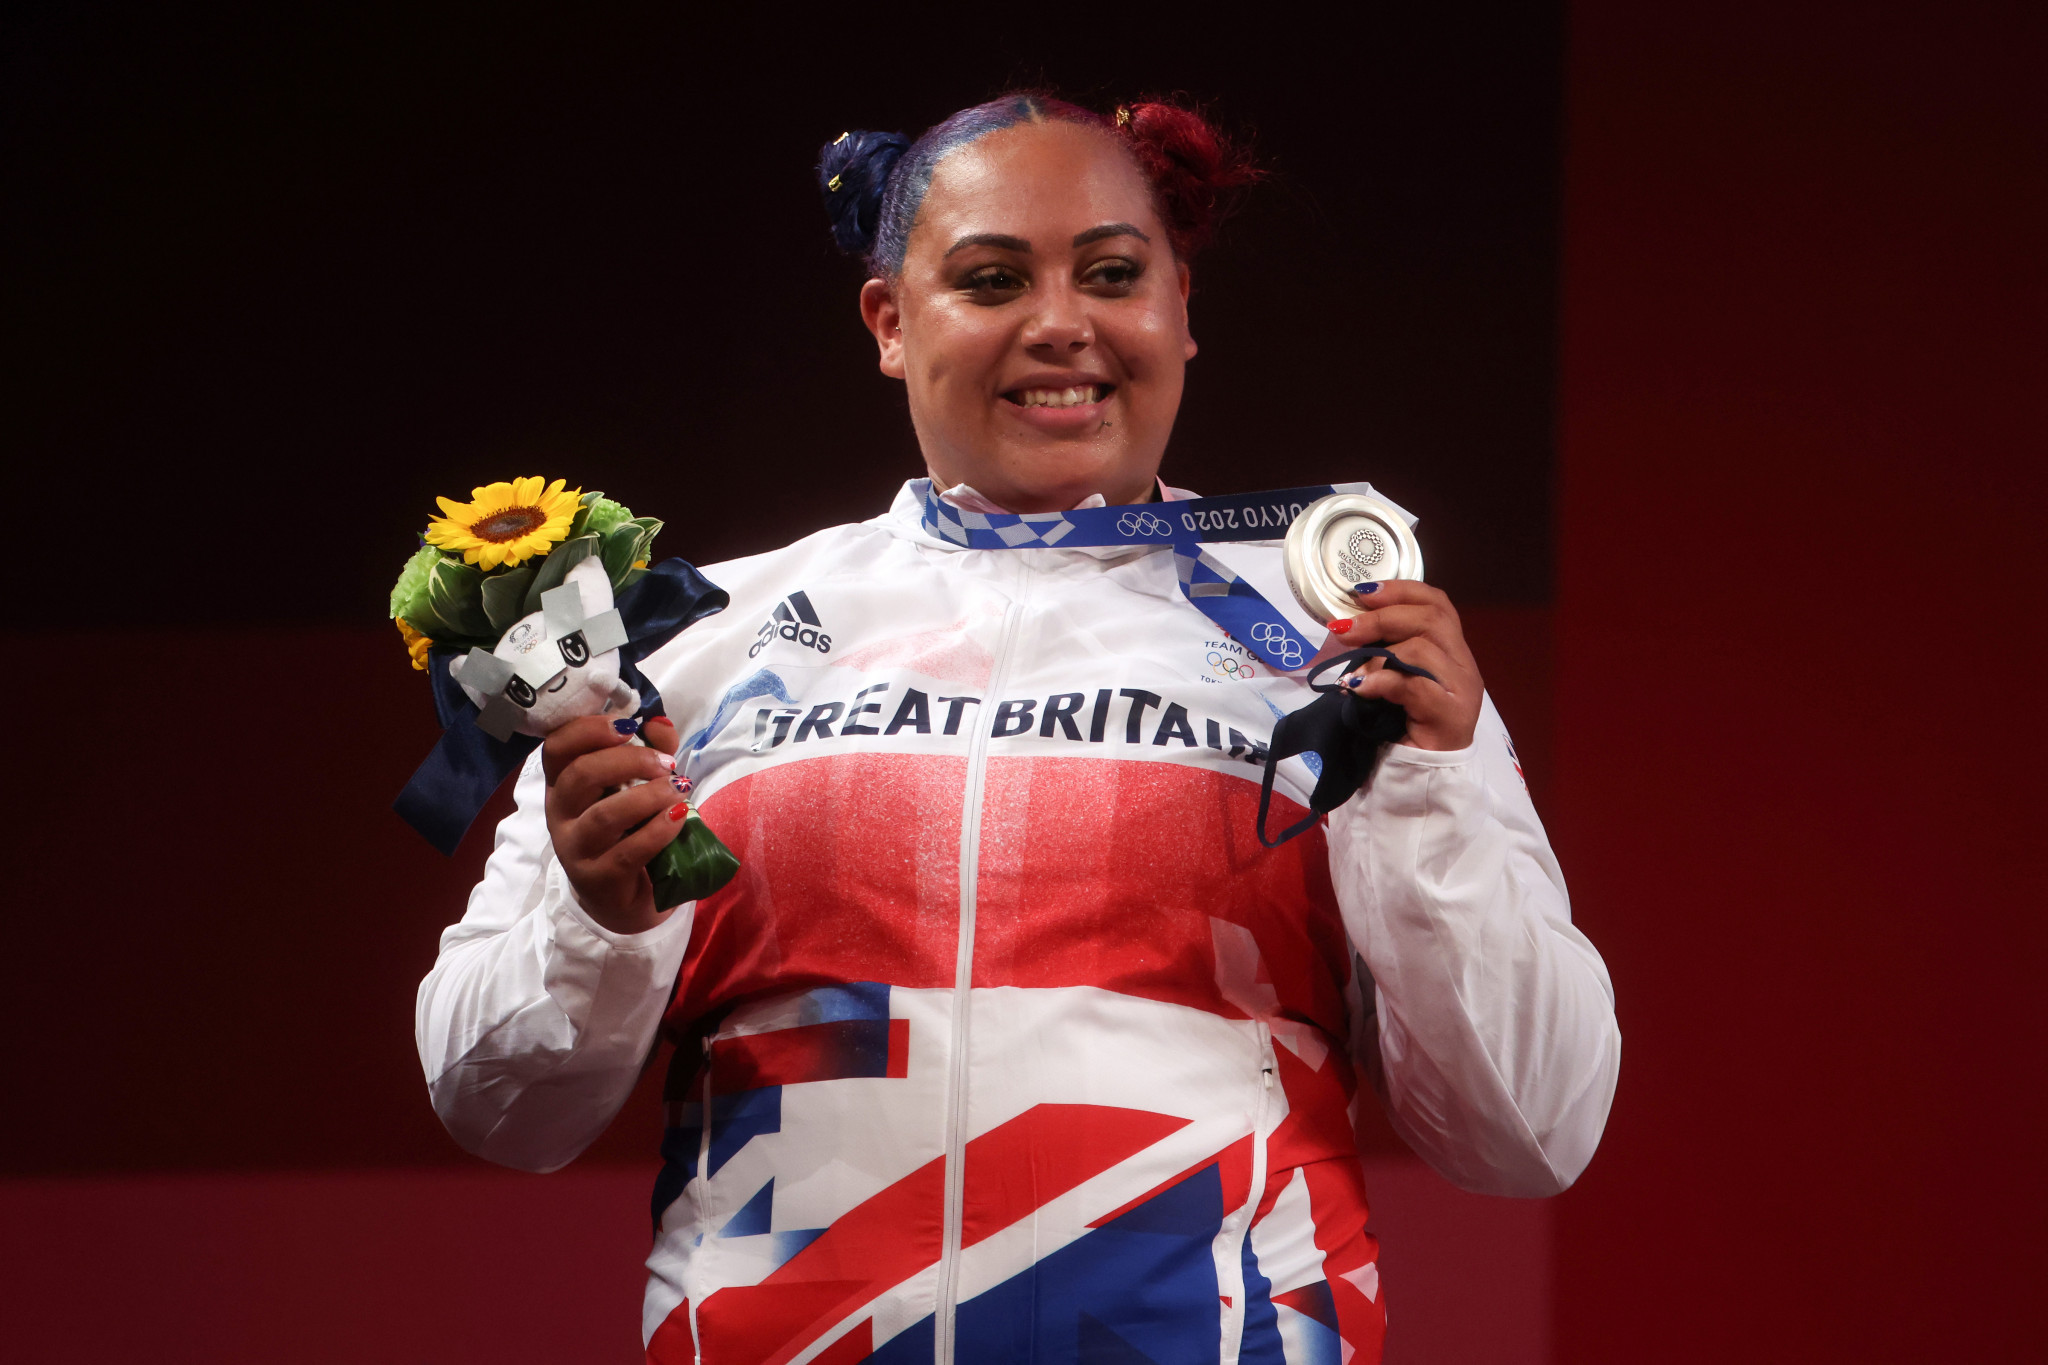 Medals from unexpected sports - such as Emily Campbell's weightlifting silver - have helped make the Olympics enjoyable viewing from Britain ©Getty Images